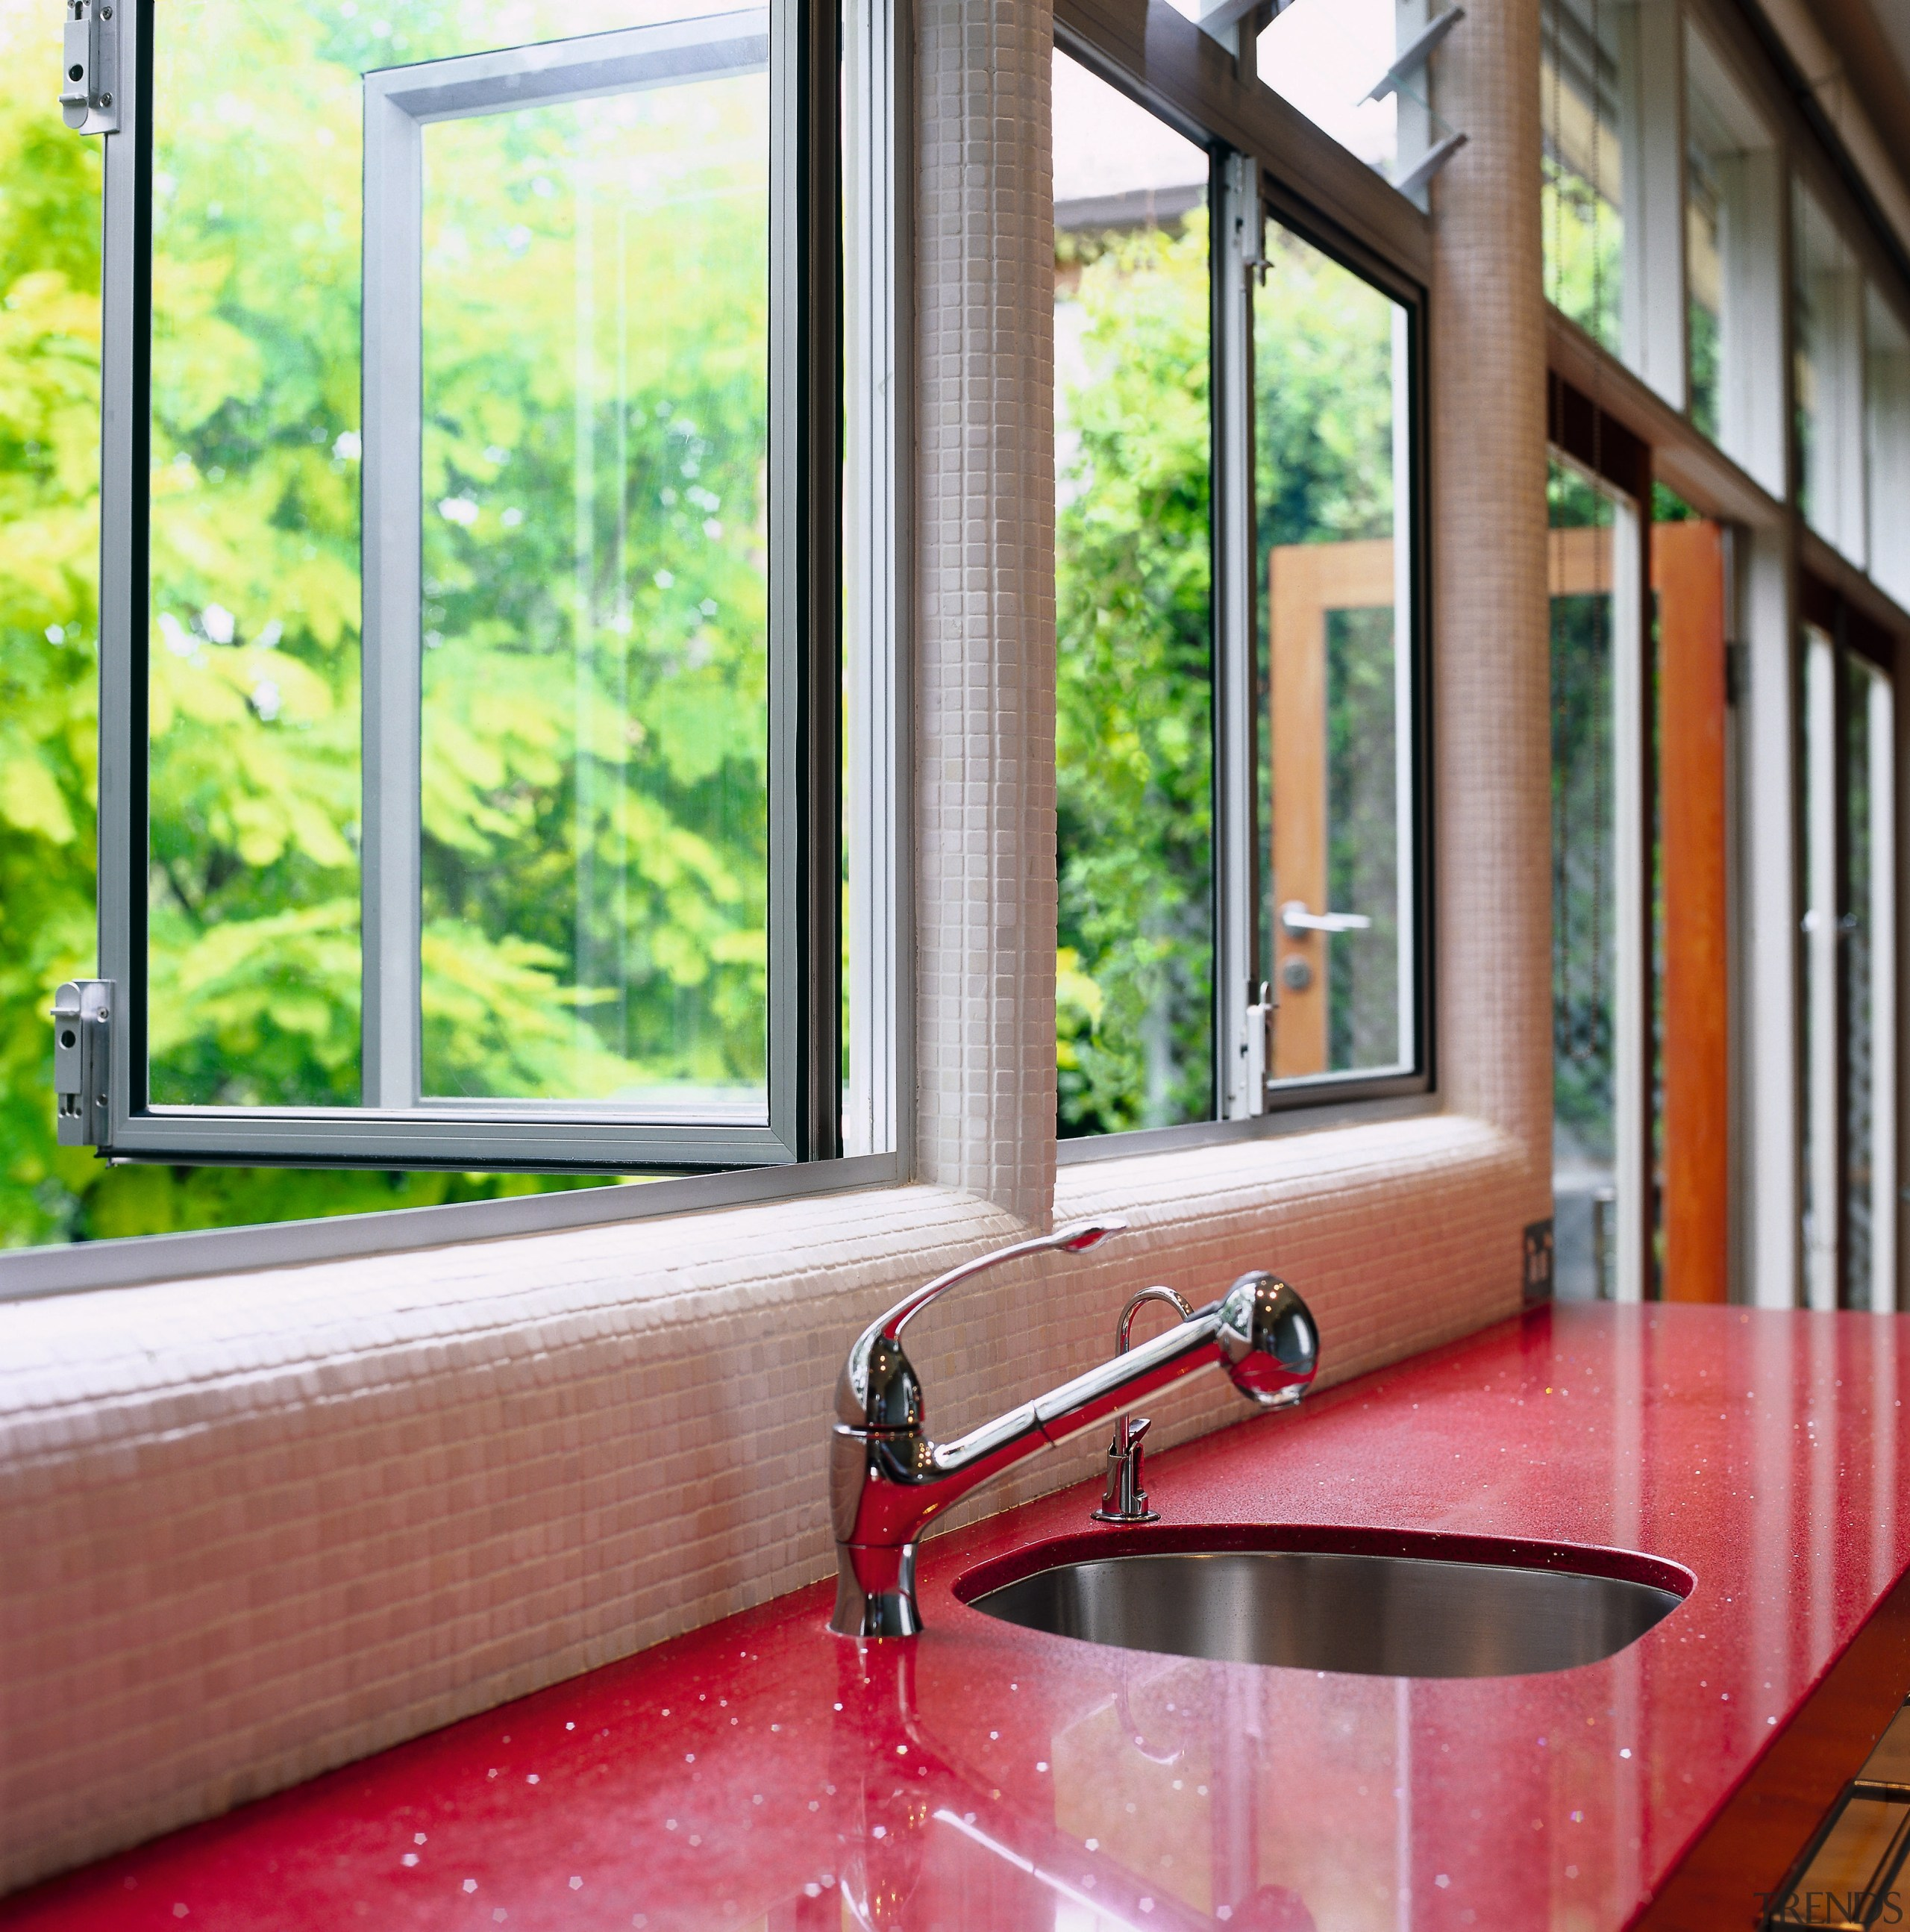 view of the kitchen benchtop looking into the daylighting, door, estate, home, house, interior design, real estate, window, wood, red